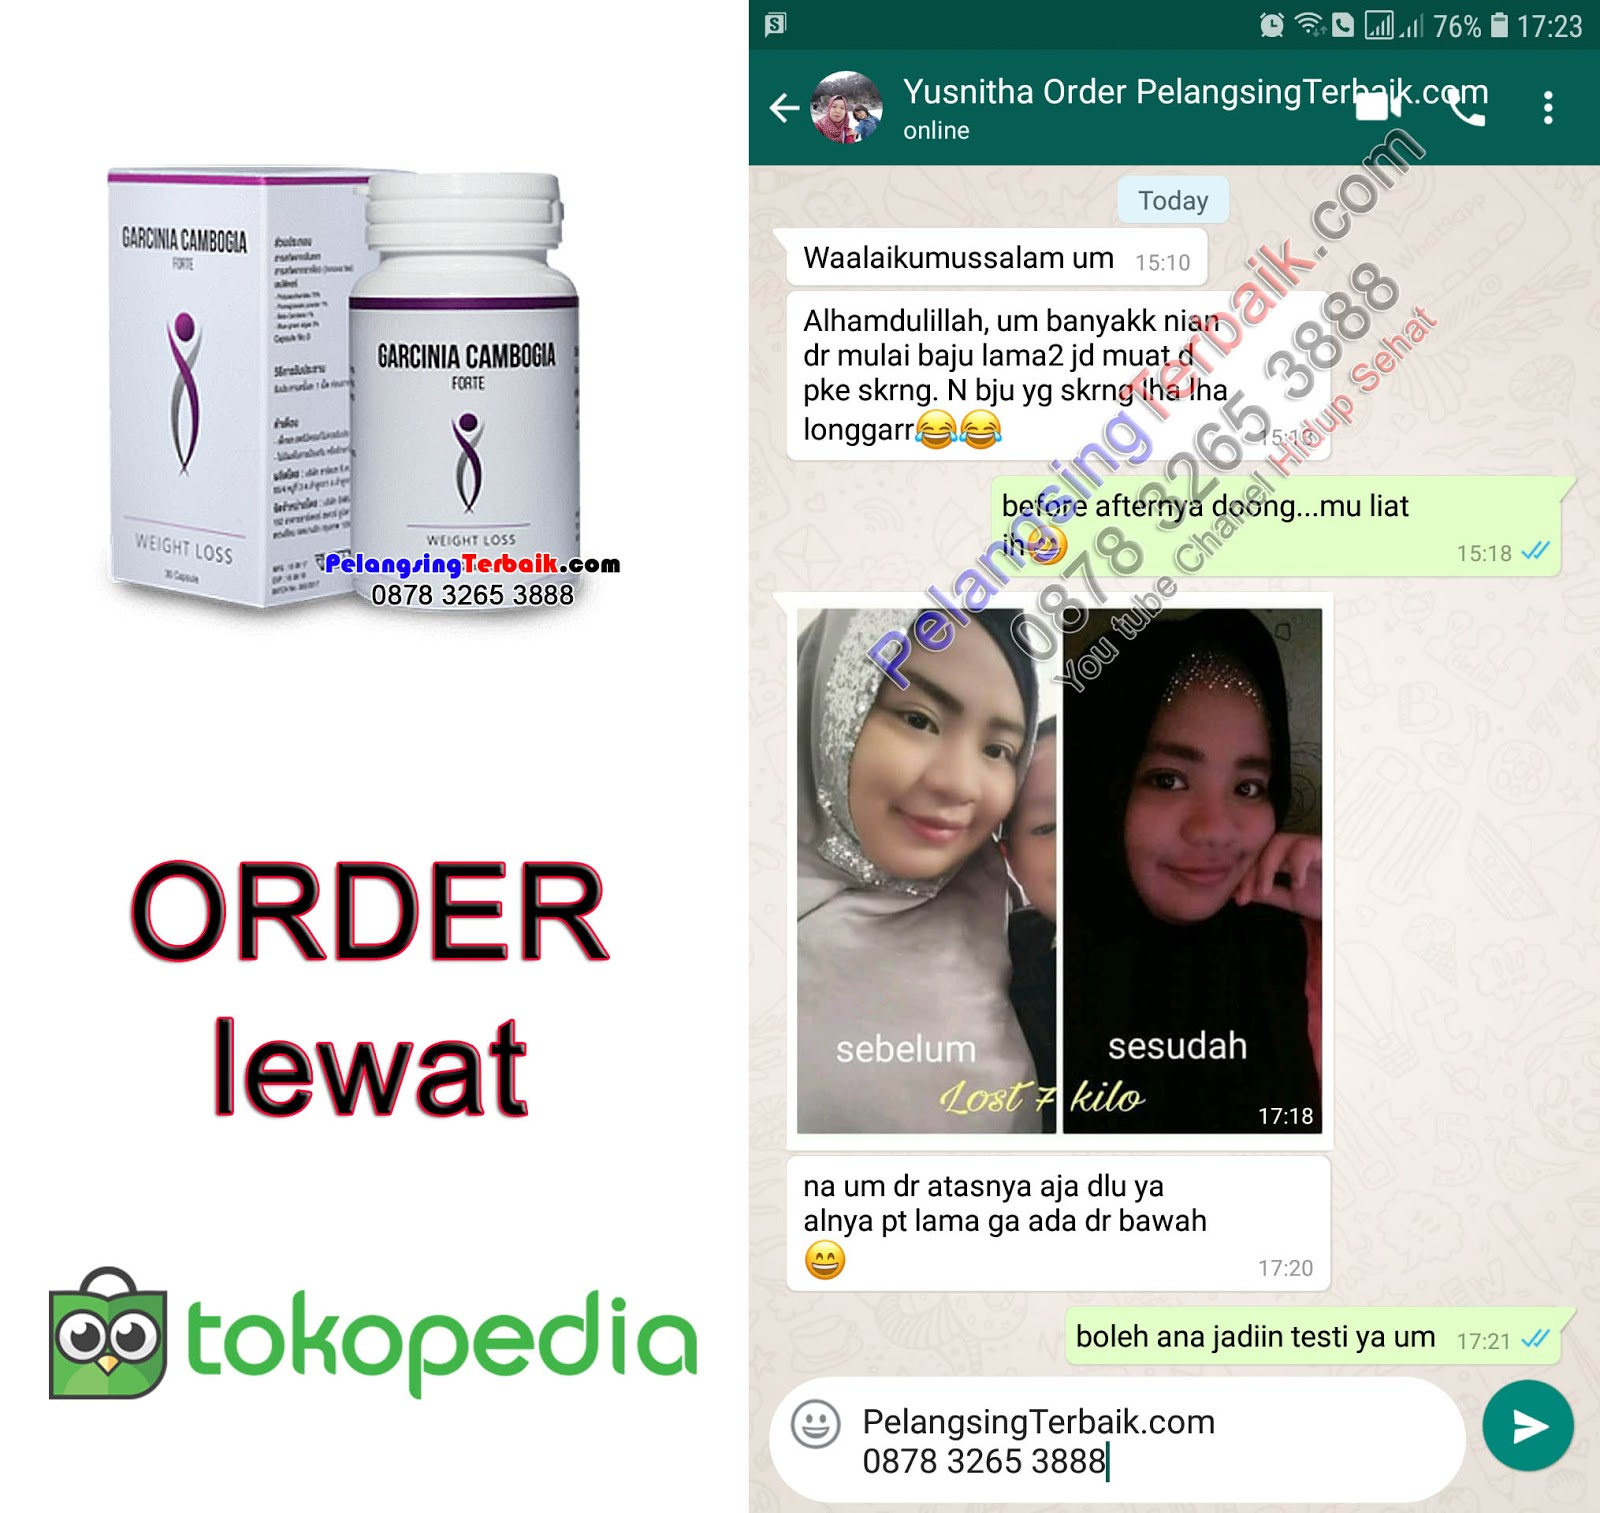 Order via TokoPedia.com